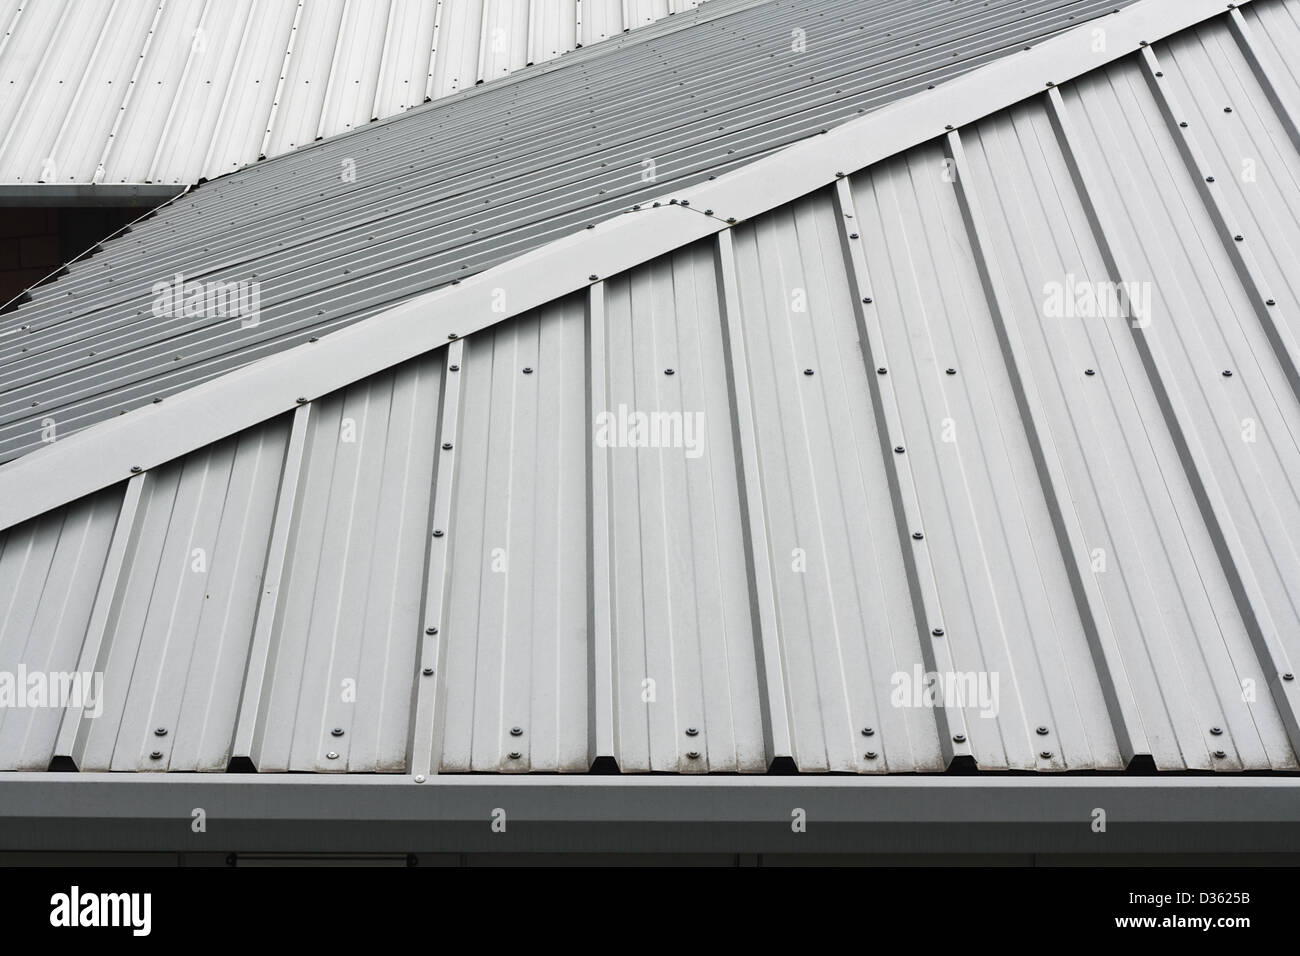 Architectural detail of metal roofing on commercial construction of modern building complex - Stock Image